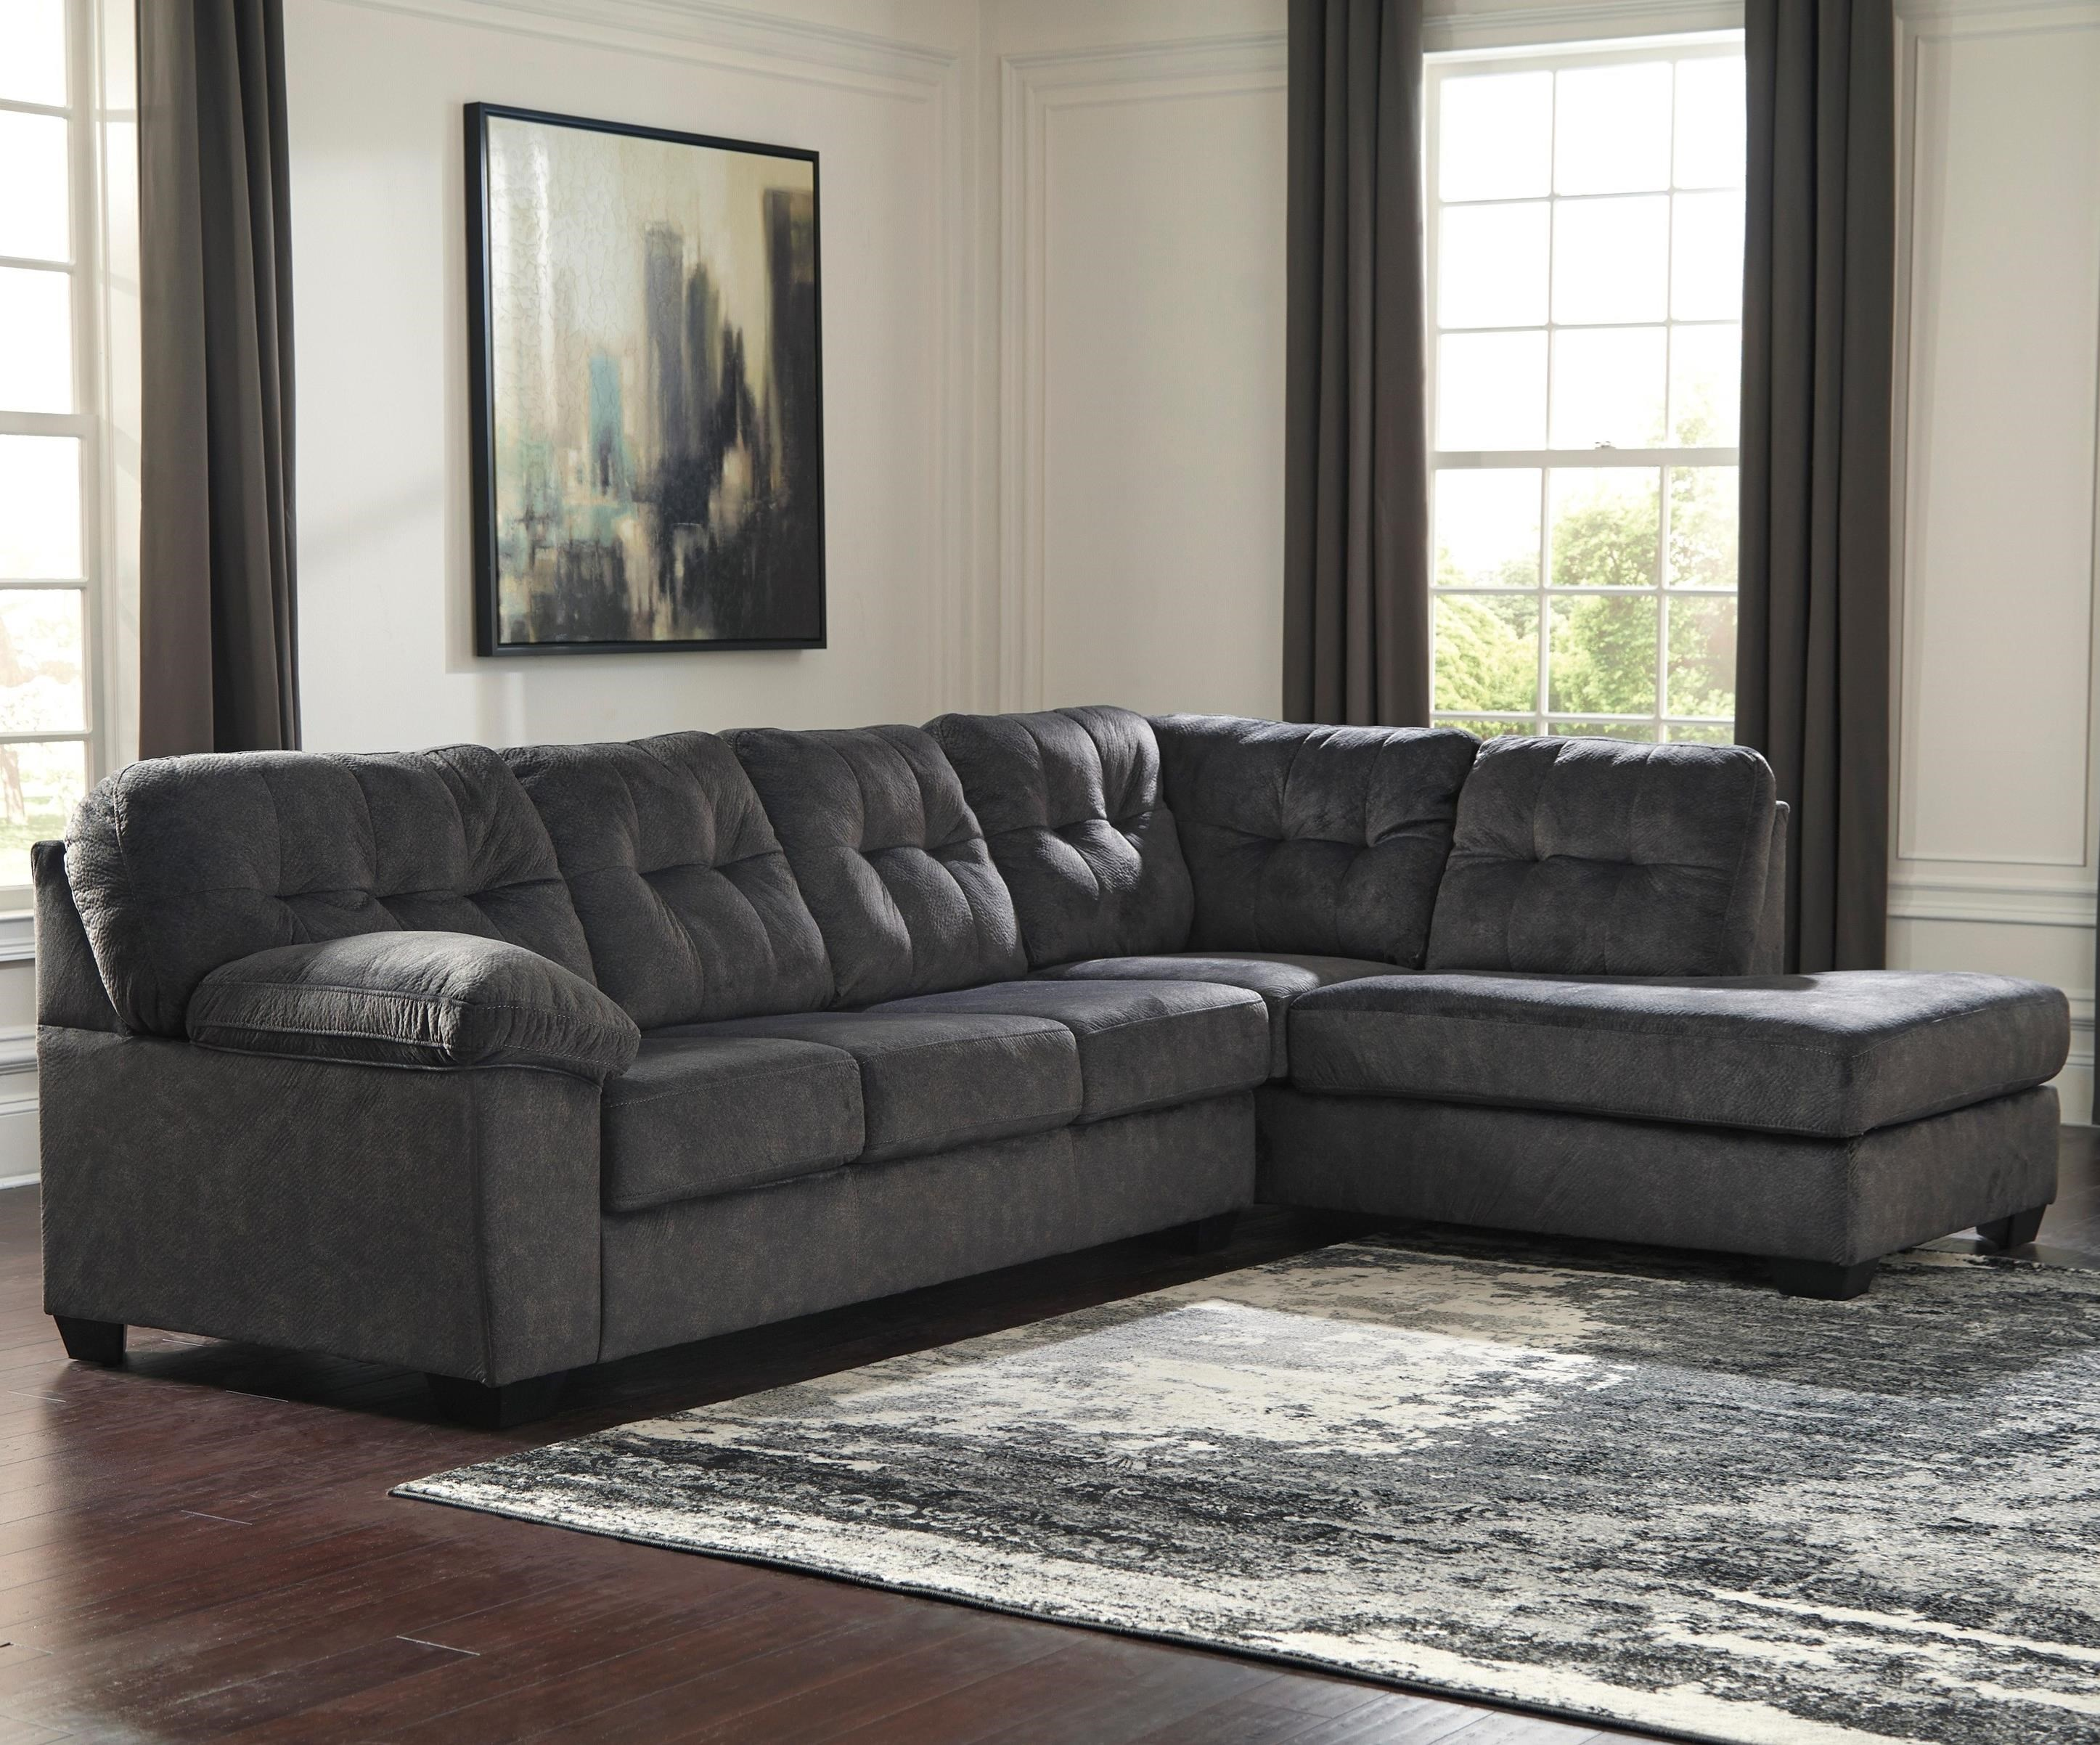 Exceptional Signature Design By Ashley AccringtonSectional With Right Chaise U0026 Queen  Sleeper ...